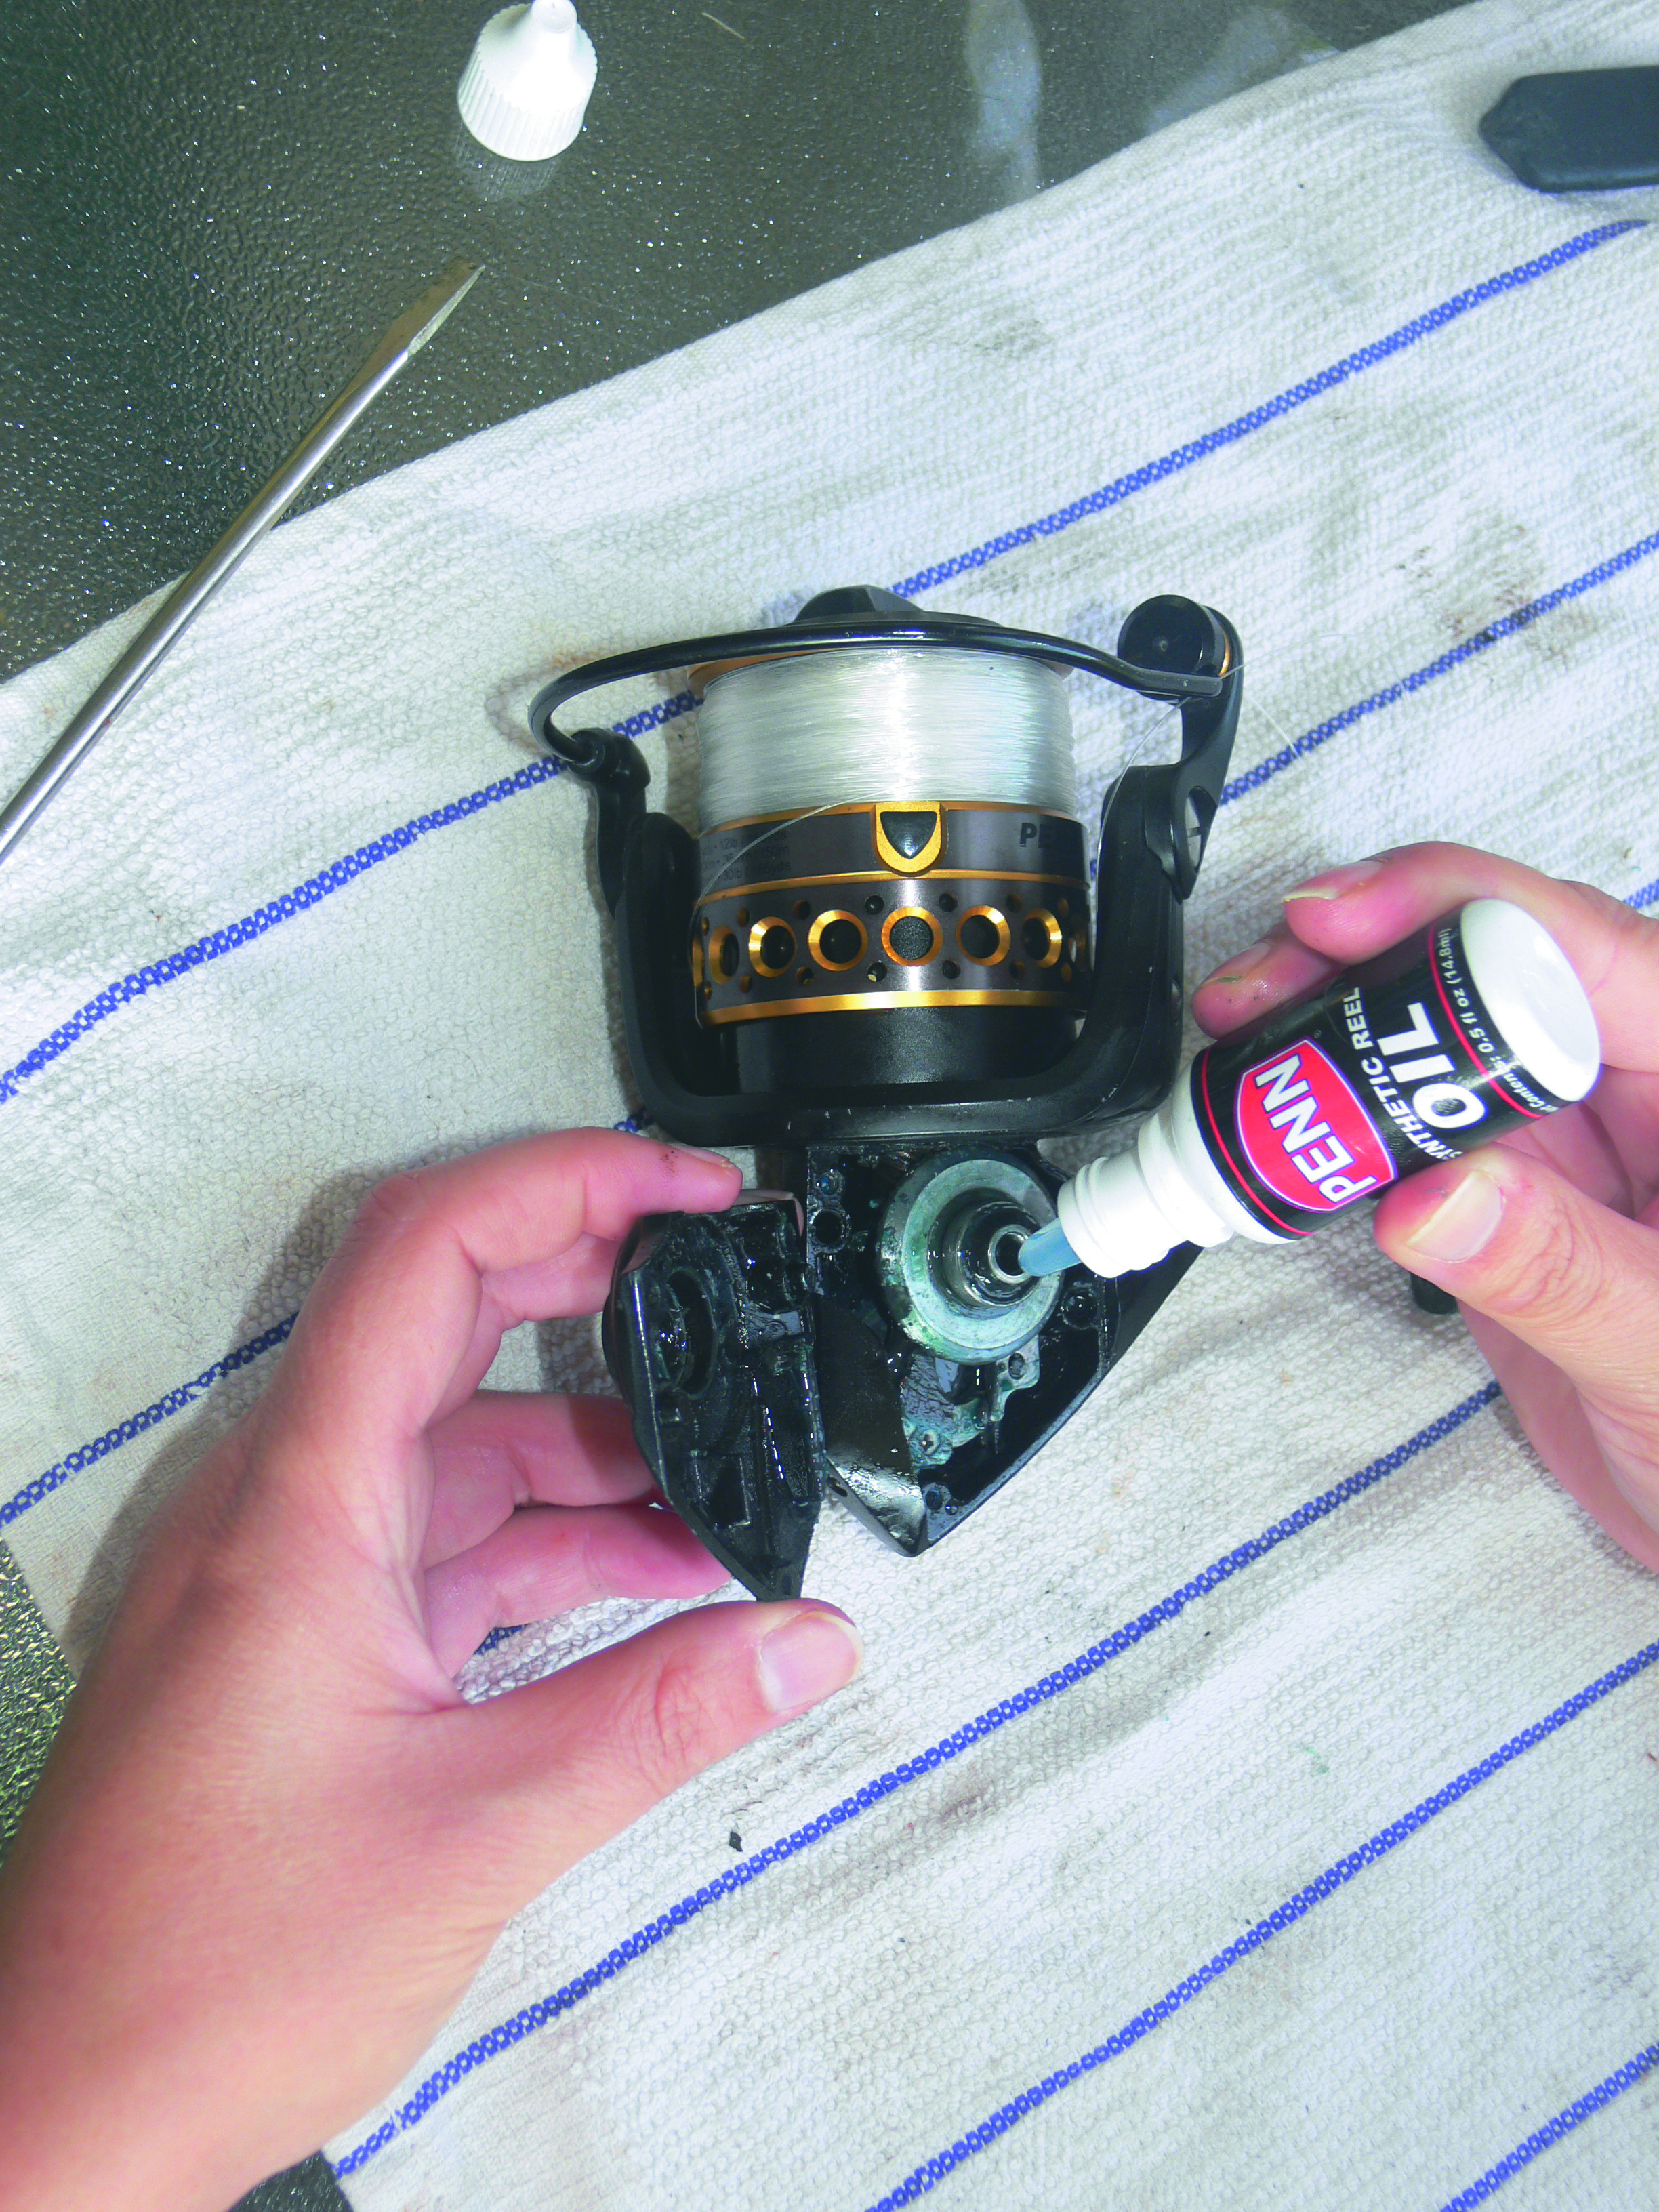 Step four to maintain your spinning reel